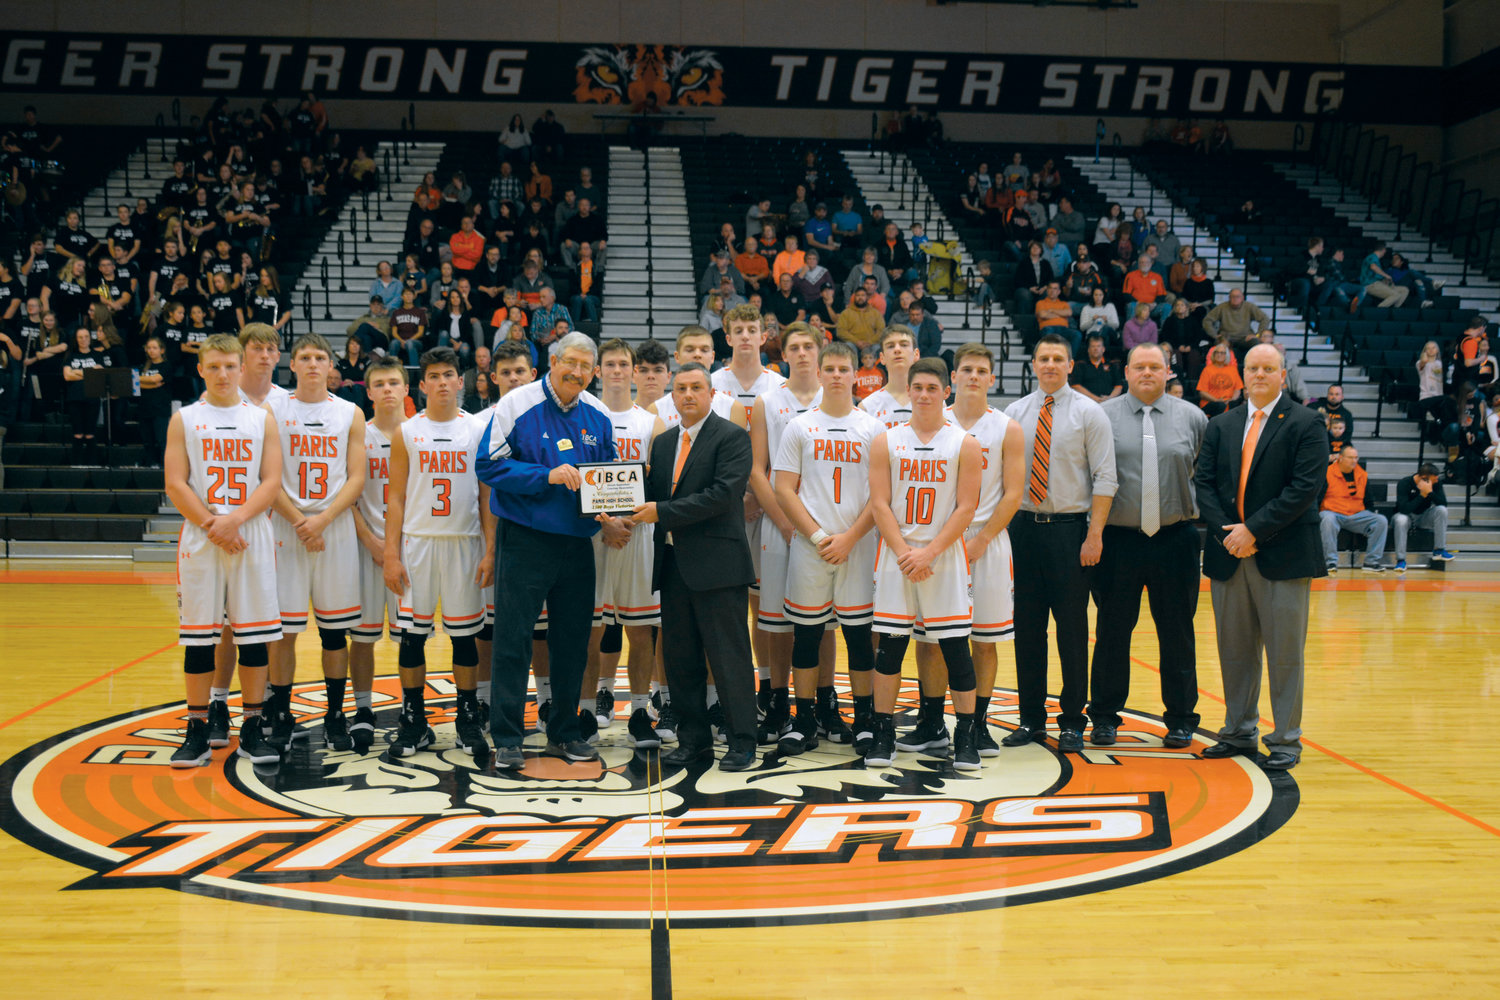 The Paris High School boys basketball program was presented with an award in recognition of having over 1,500 wins in the history of the Paris program.  With 1,768 wins to date, Paris's record ranks in the top 10 of high school programs in the state.  The 2018-2019 Varsity Tigers team, coaches and head coach Shawn Nugent accepted the award from Illinois Basketball Coaches Association representative and Hall of Fame Coach Bruce Firchau.